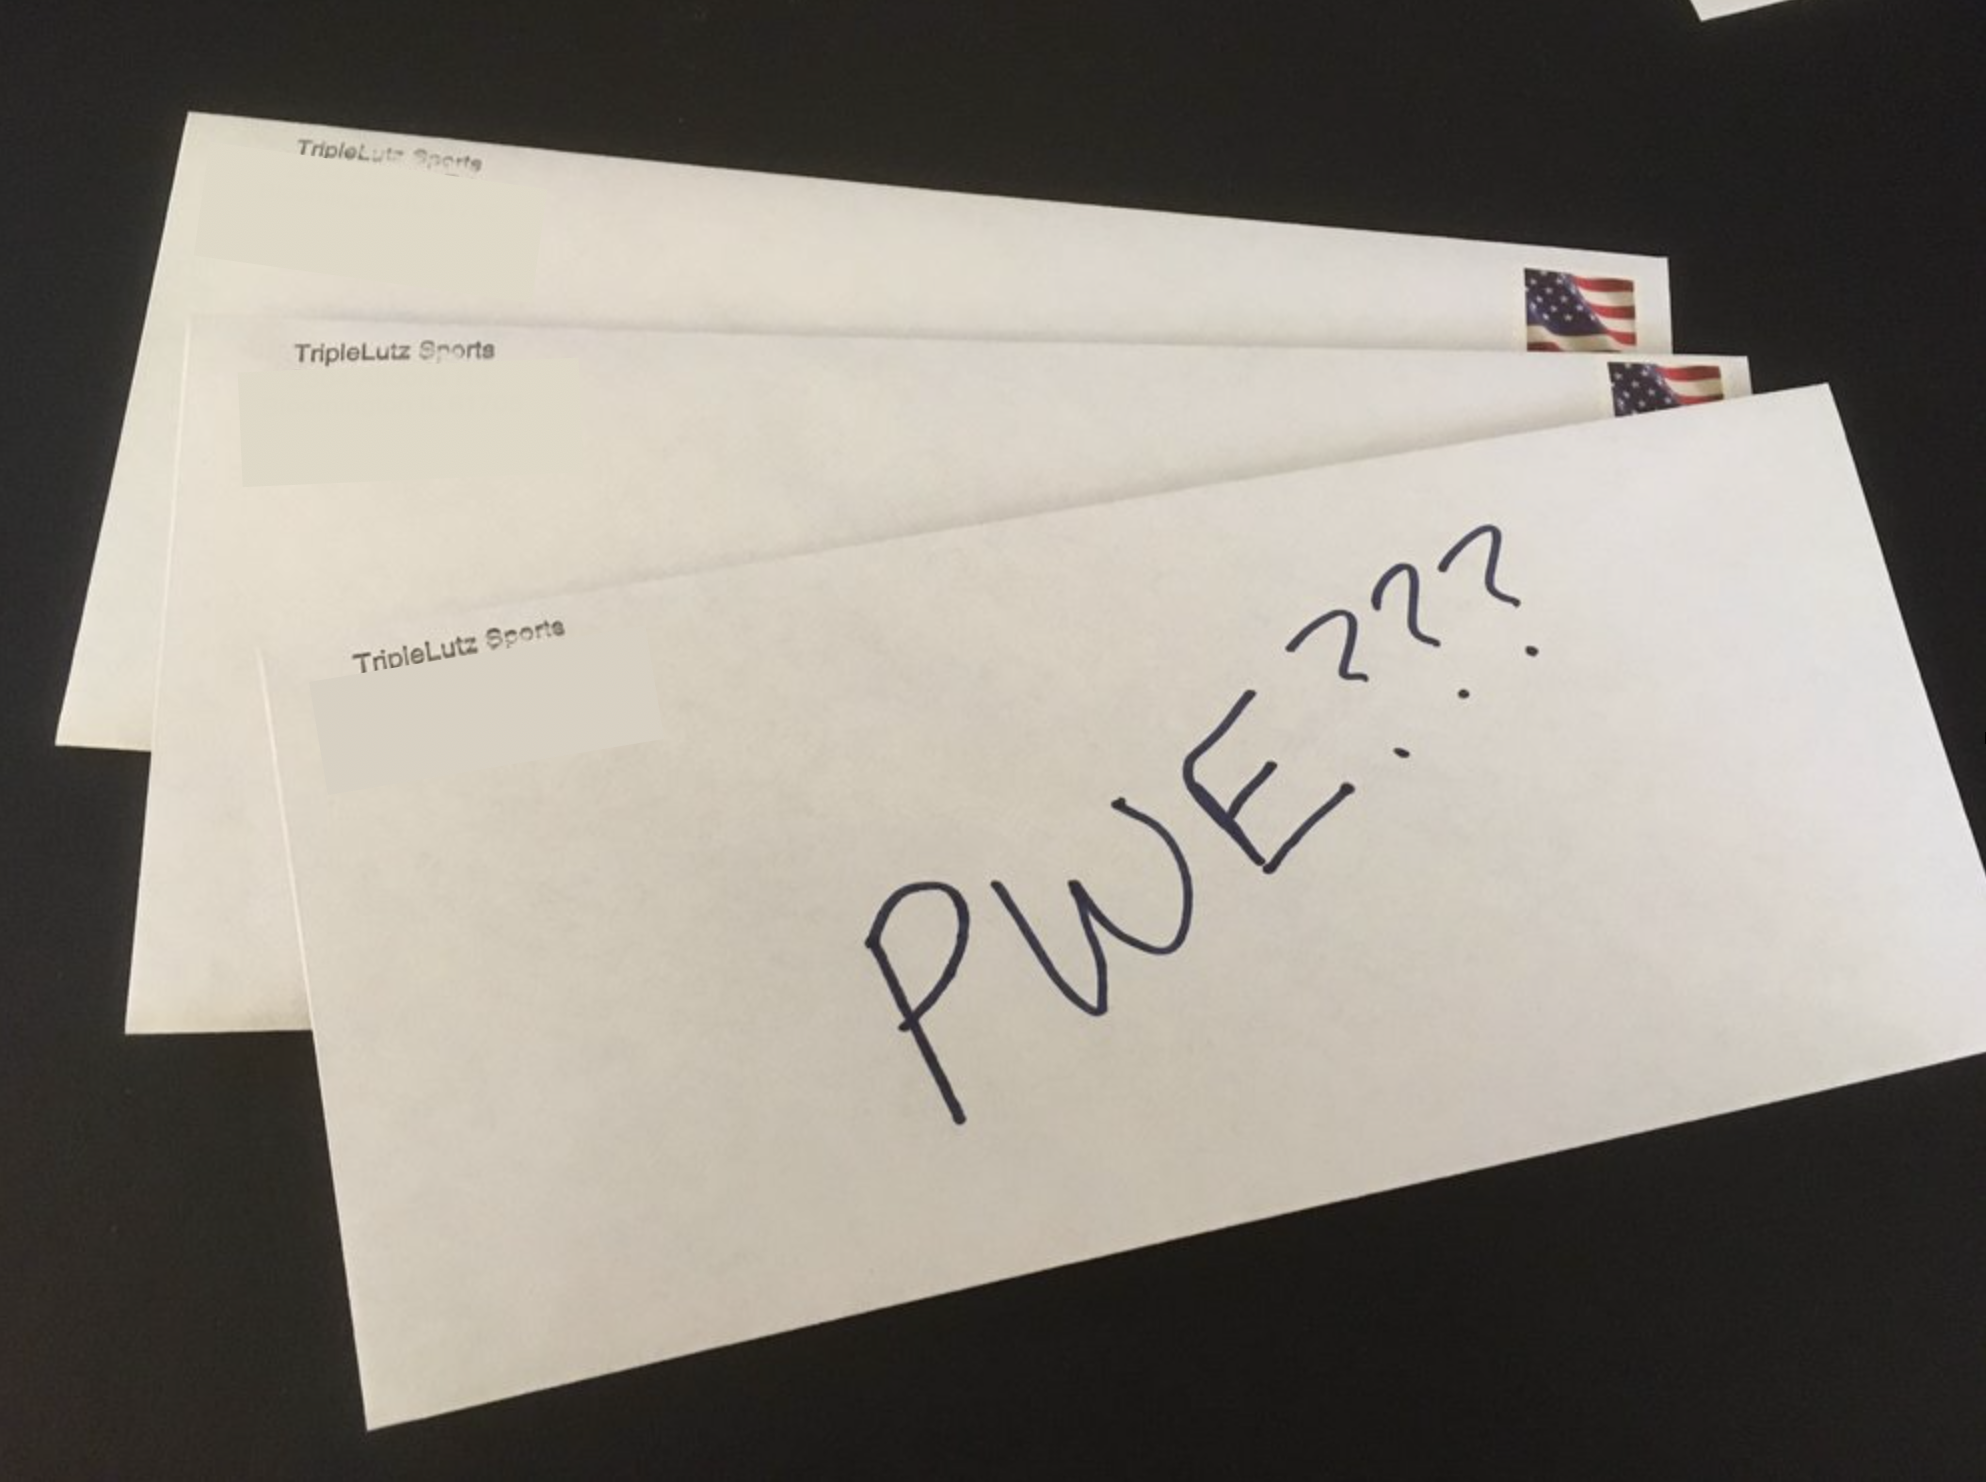 How To Mail A Baseball Card In A Pwe The Definitive Guide